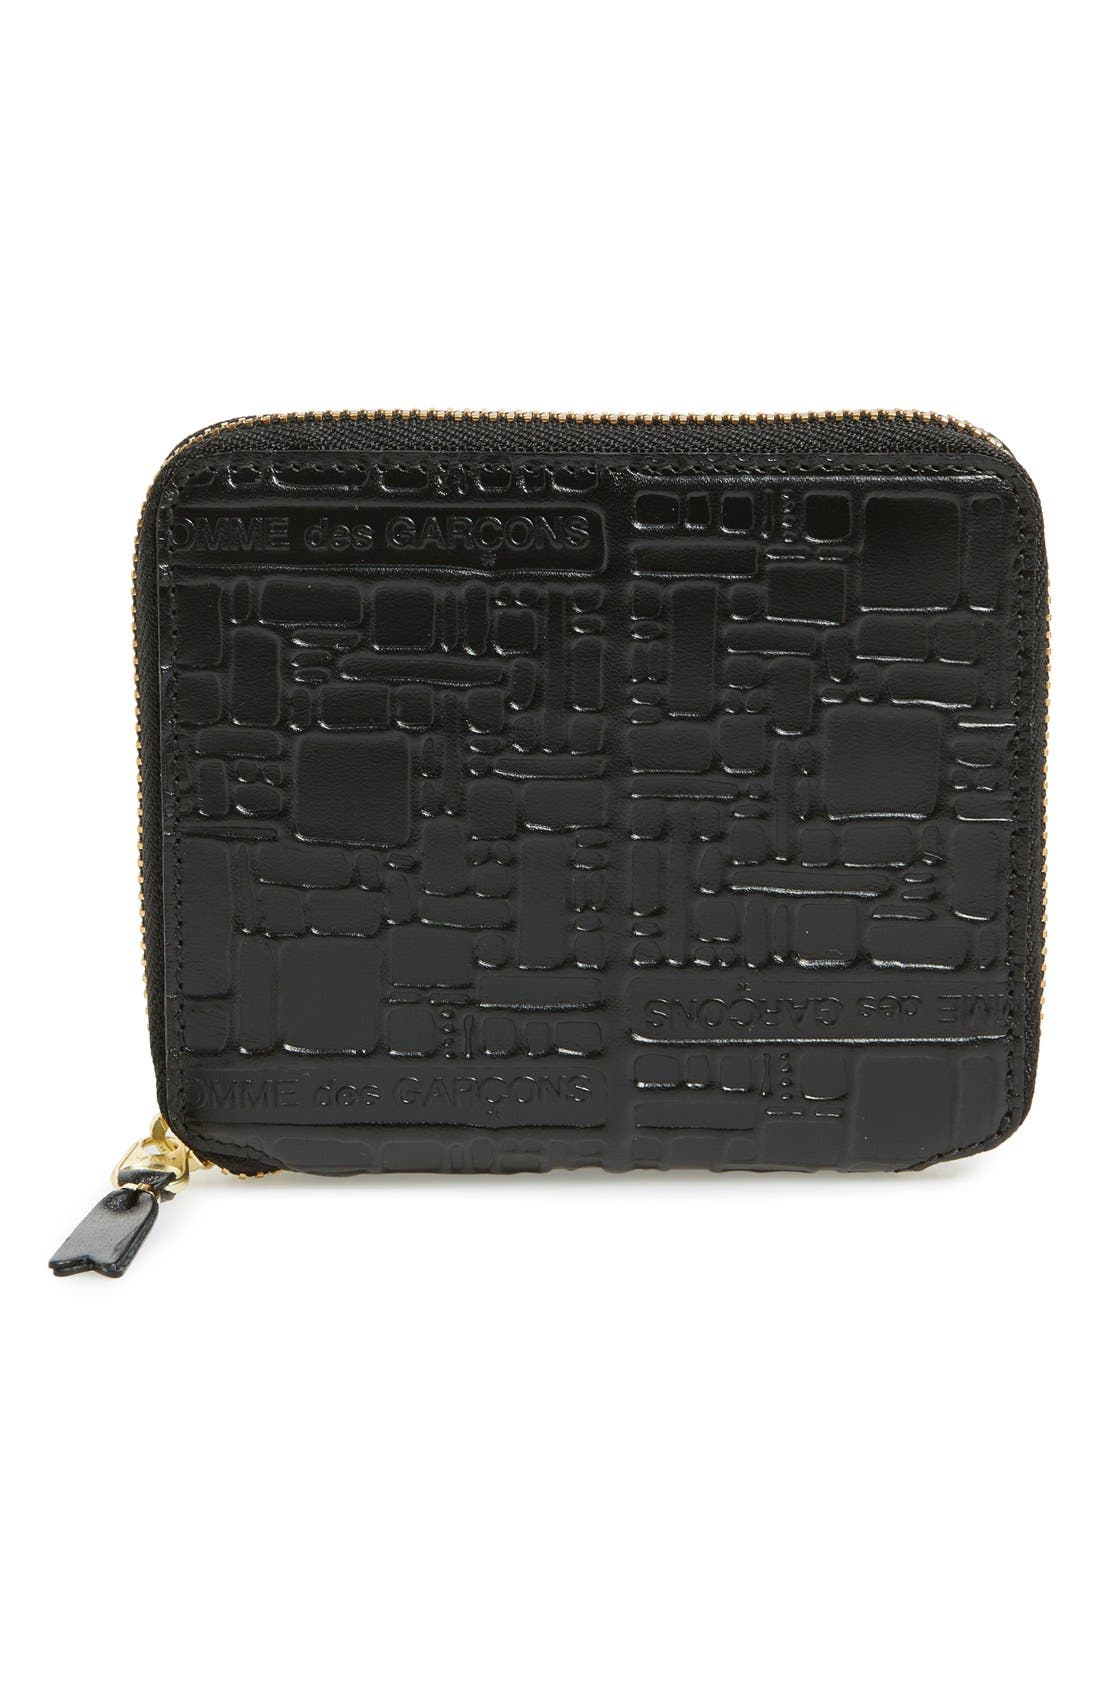 Comme de Garçons Embossed French Wallet,                             Main thumbnail 1, color,                             001